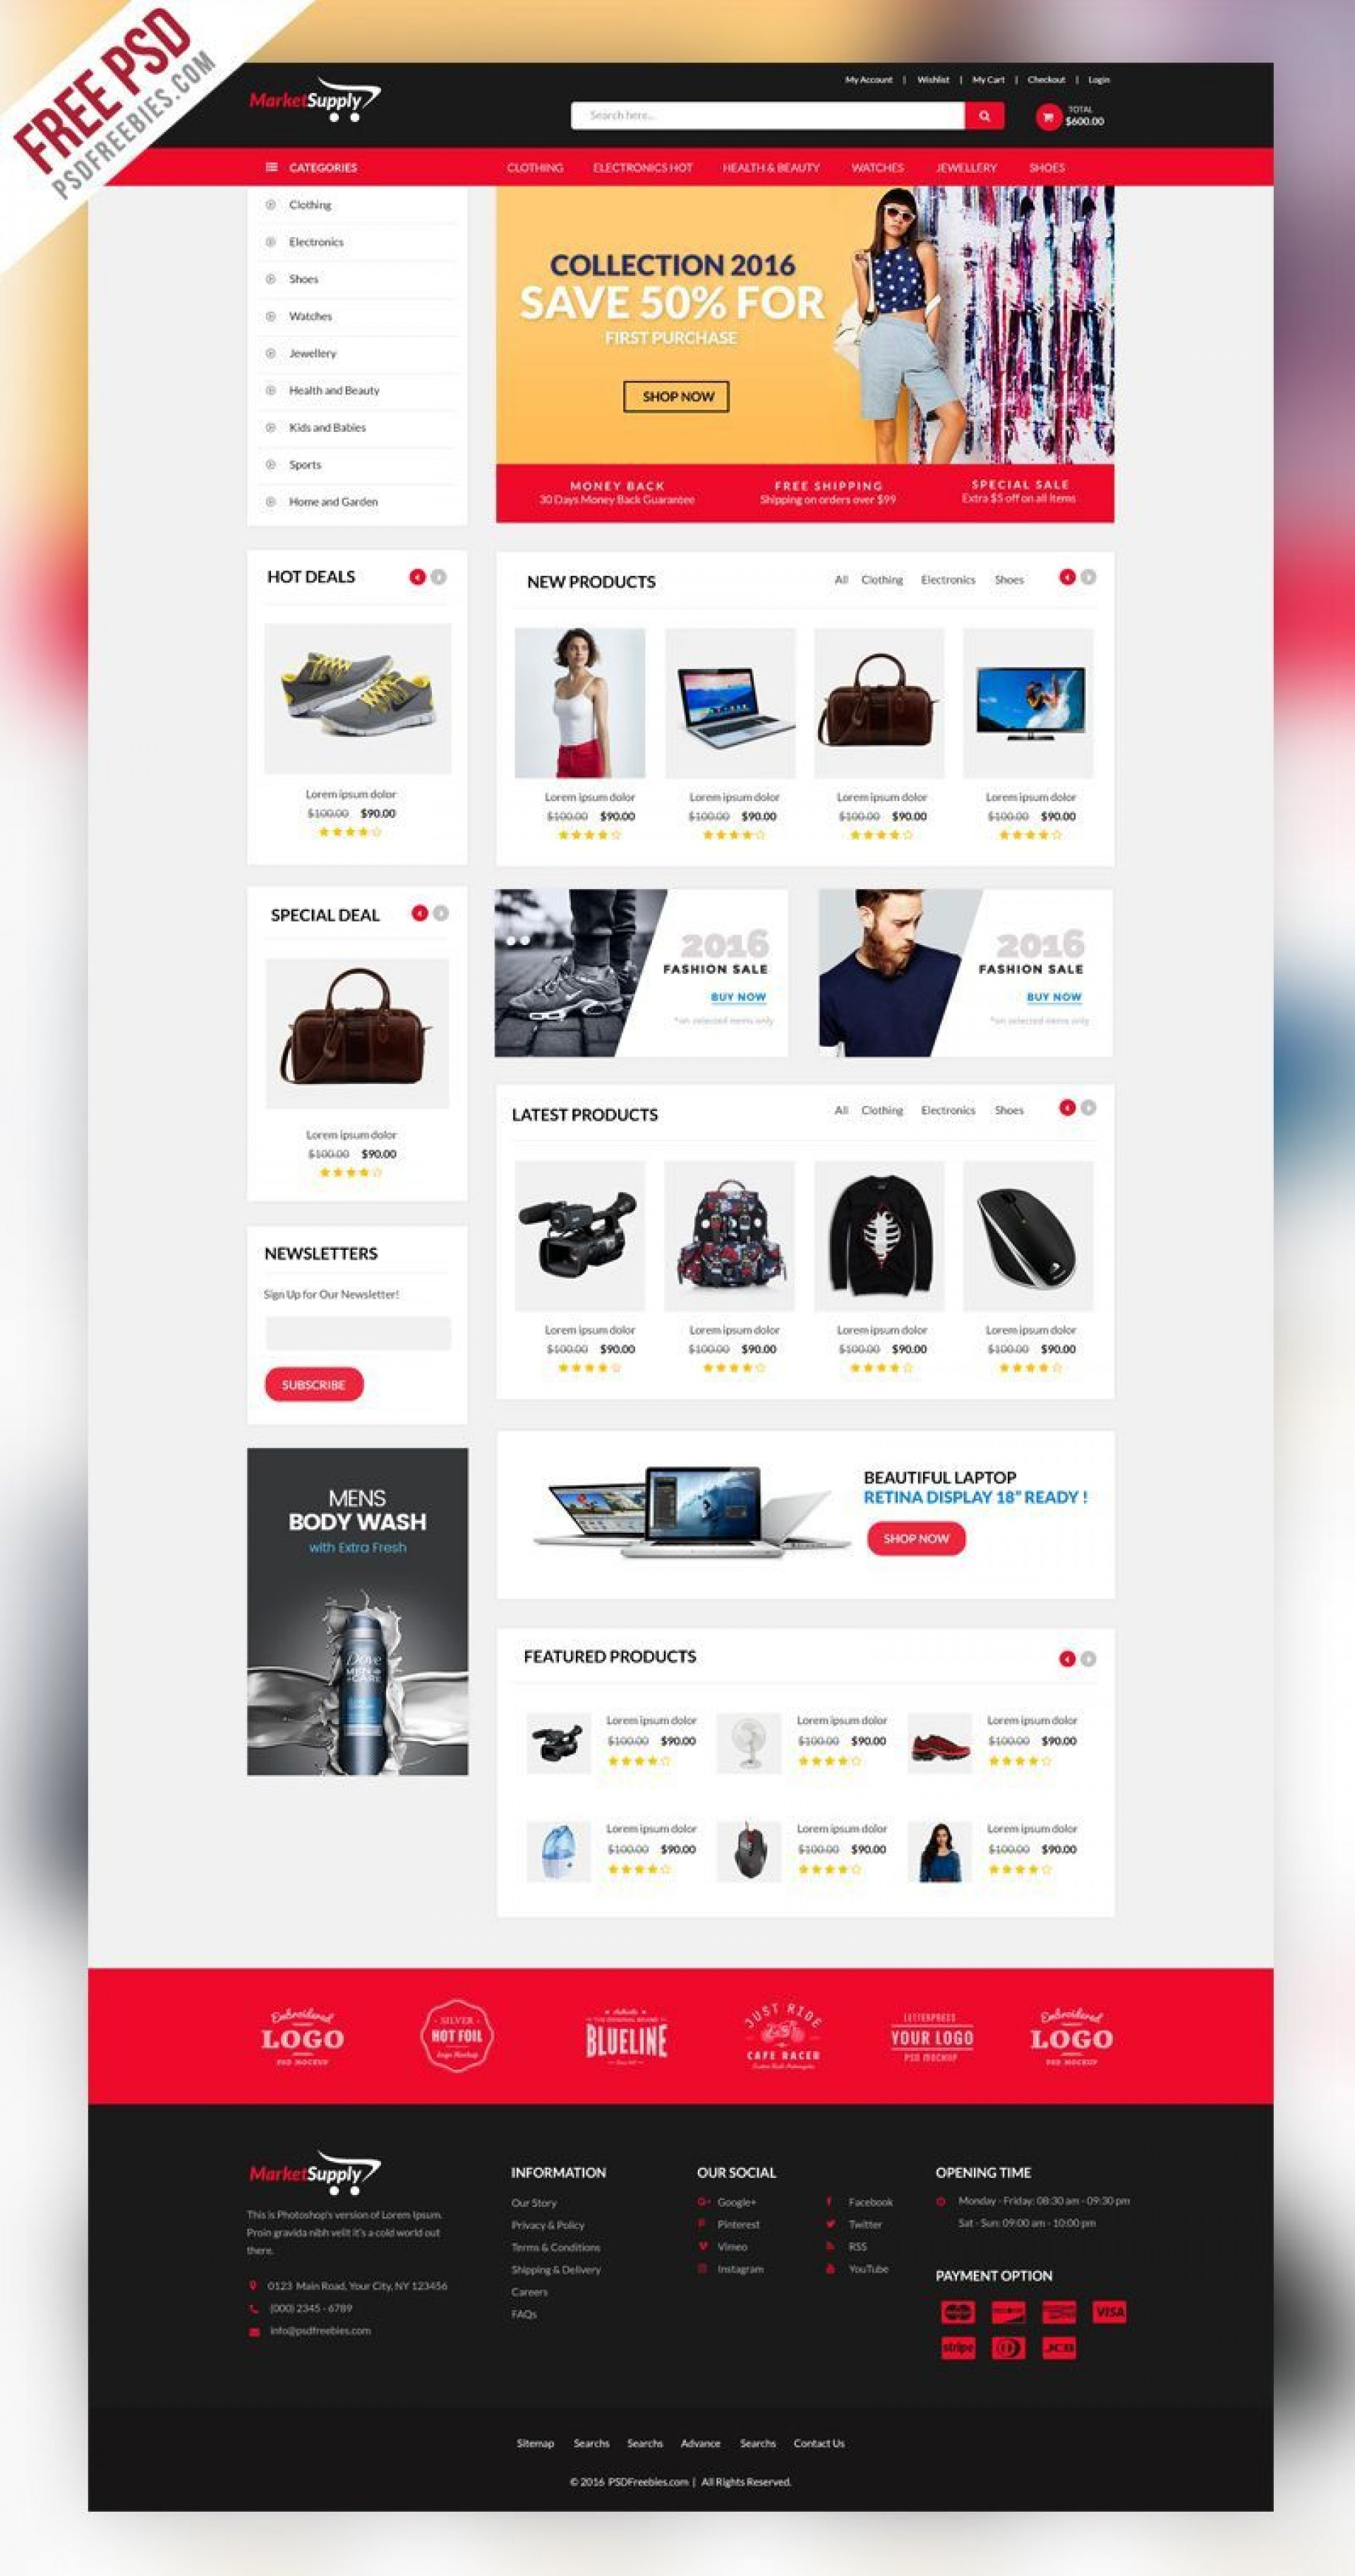 006 Amazing Ecommerce Website Template Html Free Download Design  Bootstrap 4 Responsive With Cs Jquery1920